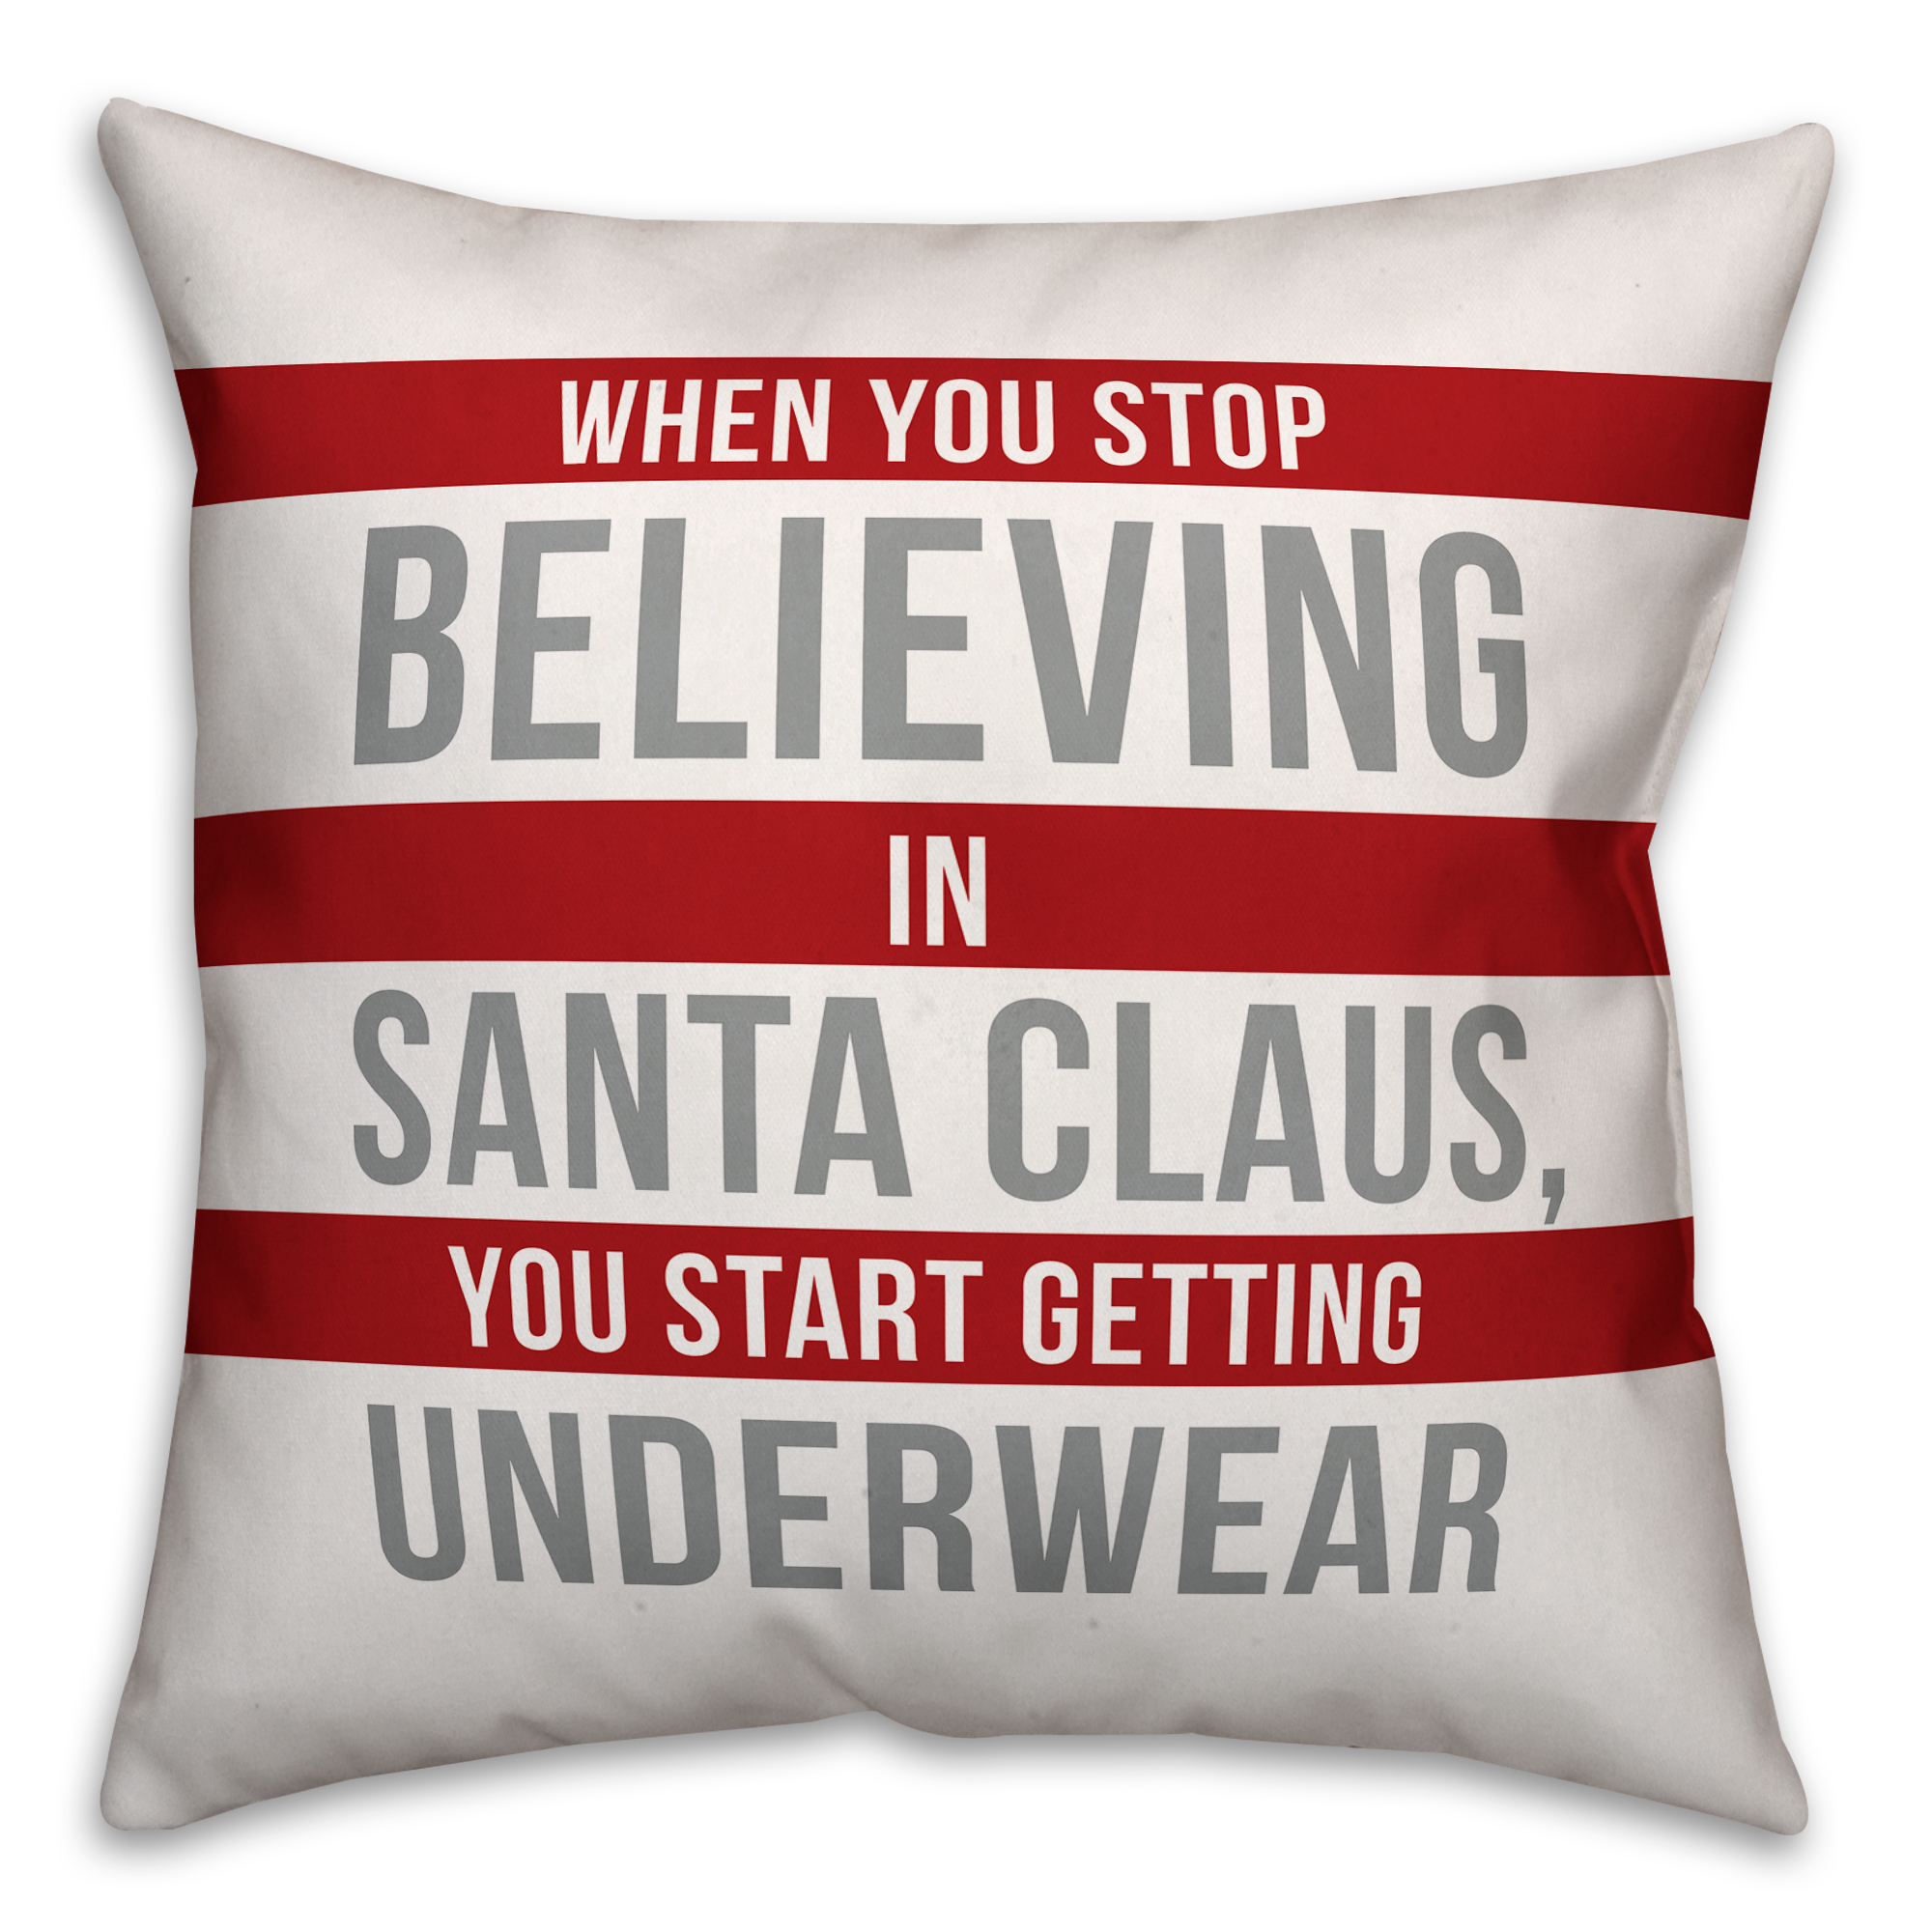 Don't Stop Believing in Santa Claus 18x18 Spun Poly Pillow